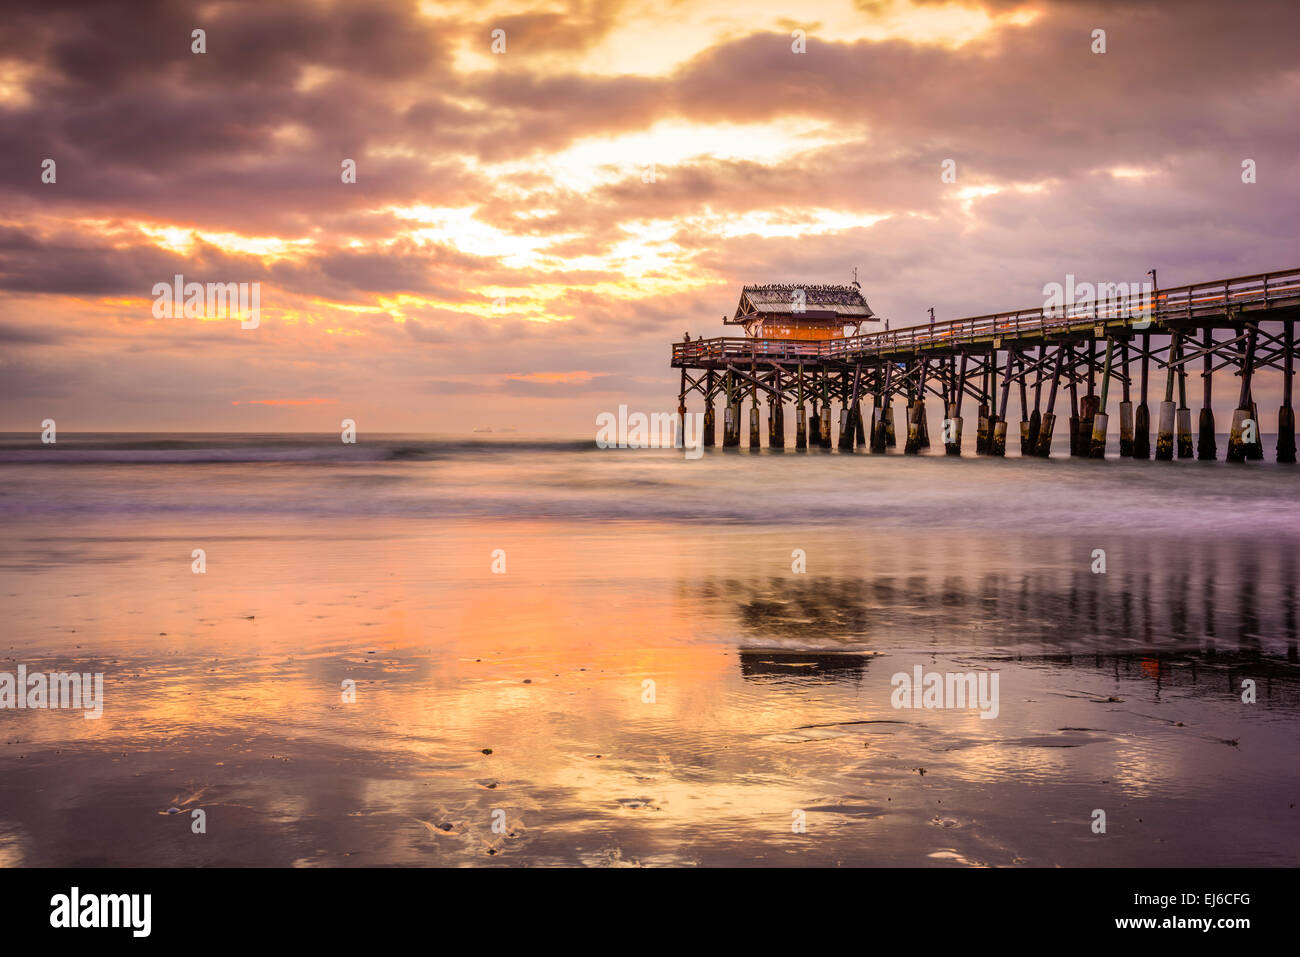 Cocoa Beach, Florida, USA beach and pier at sunrise. - Stock Image